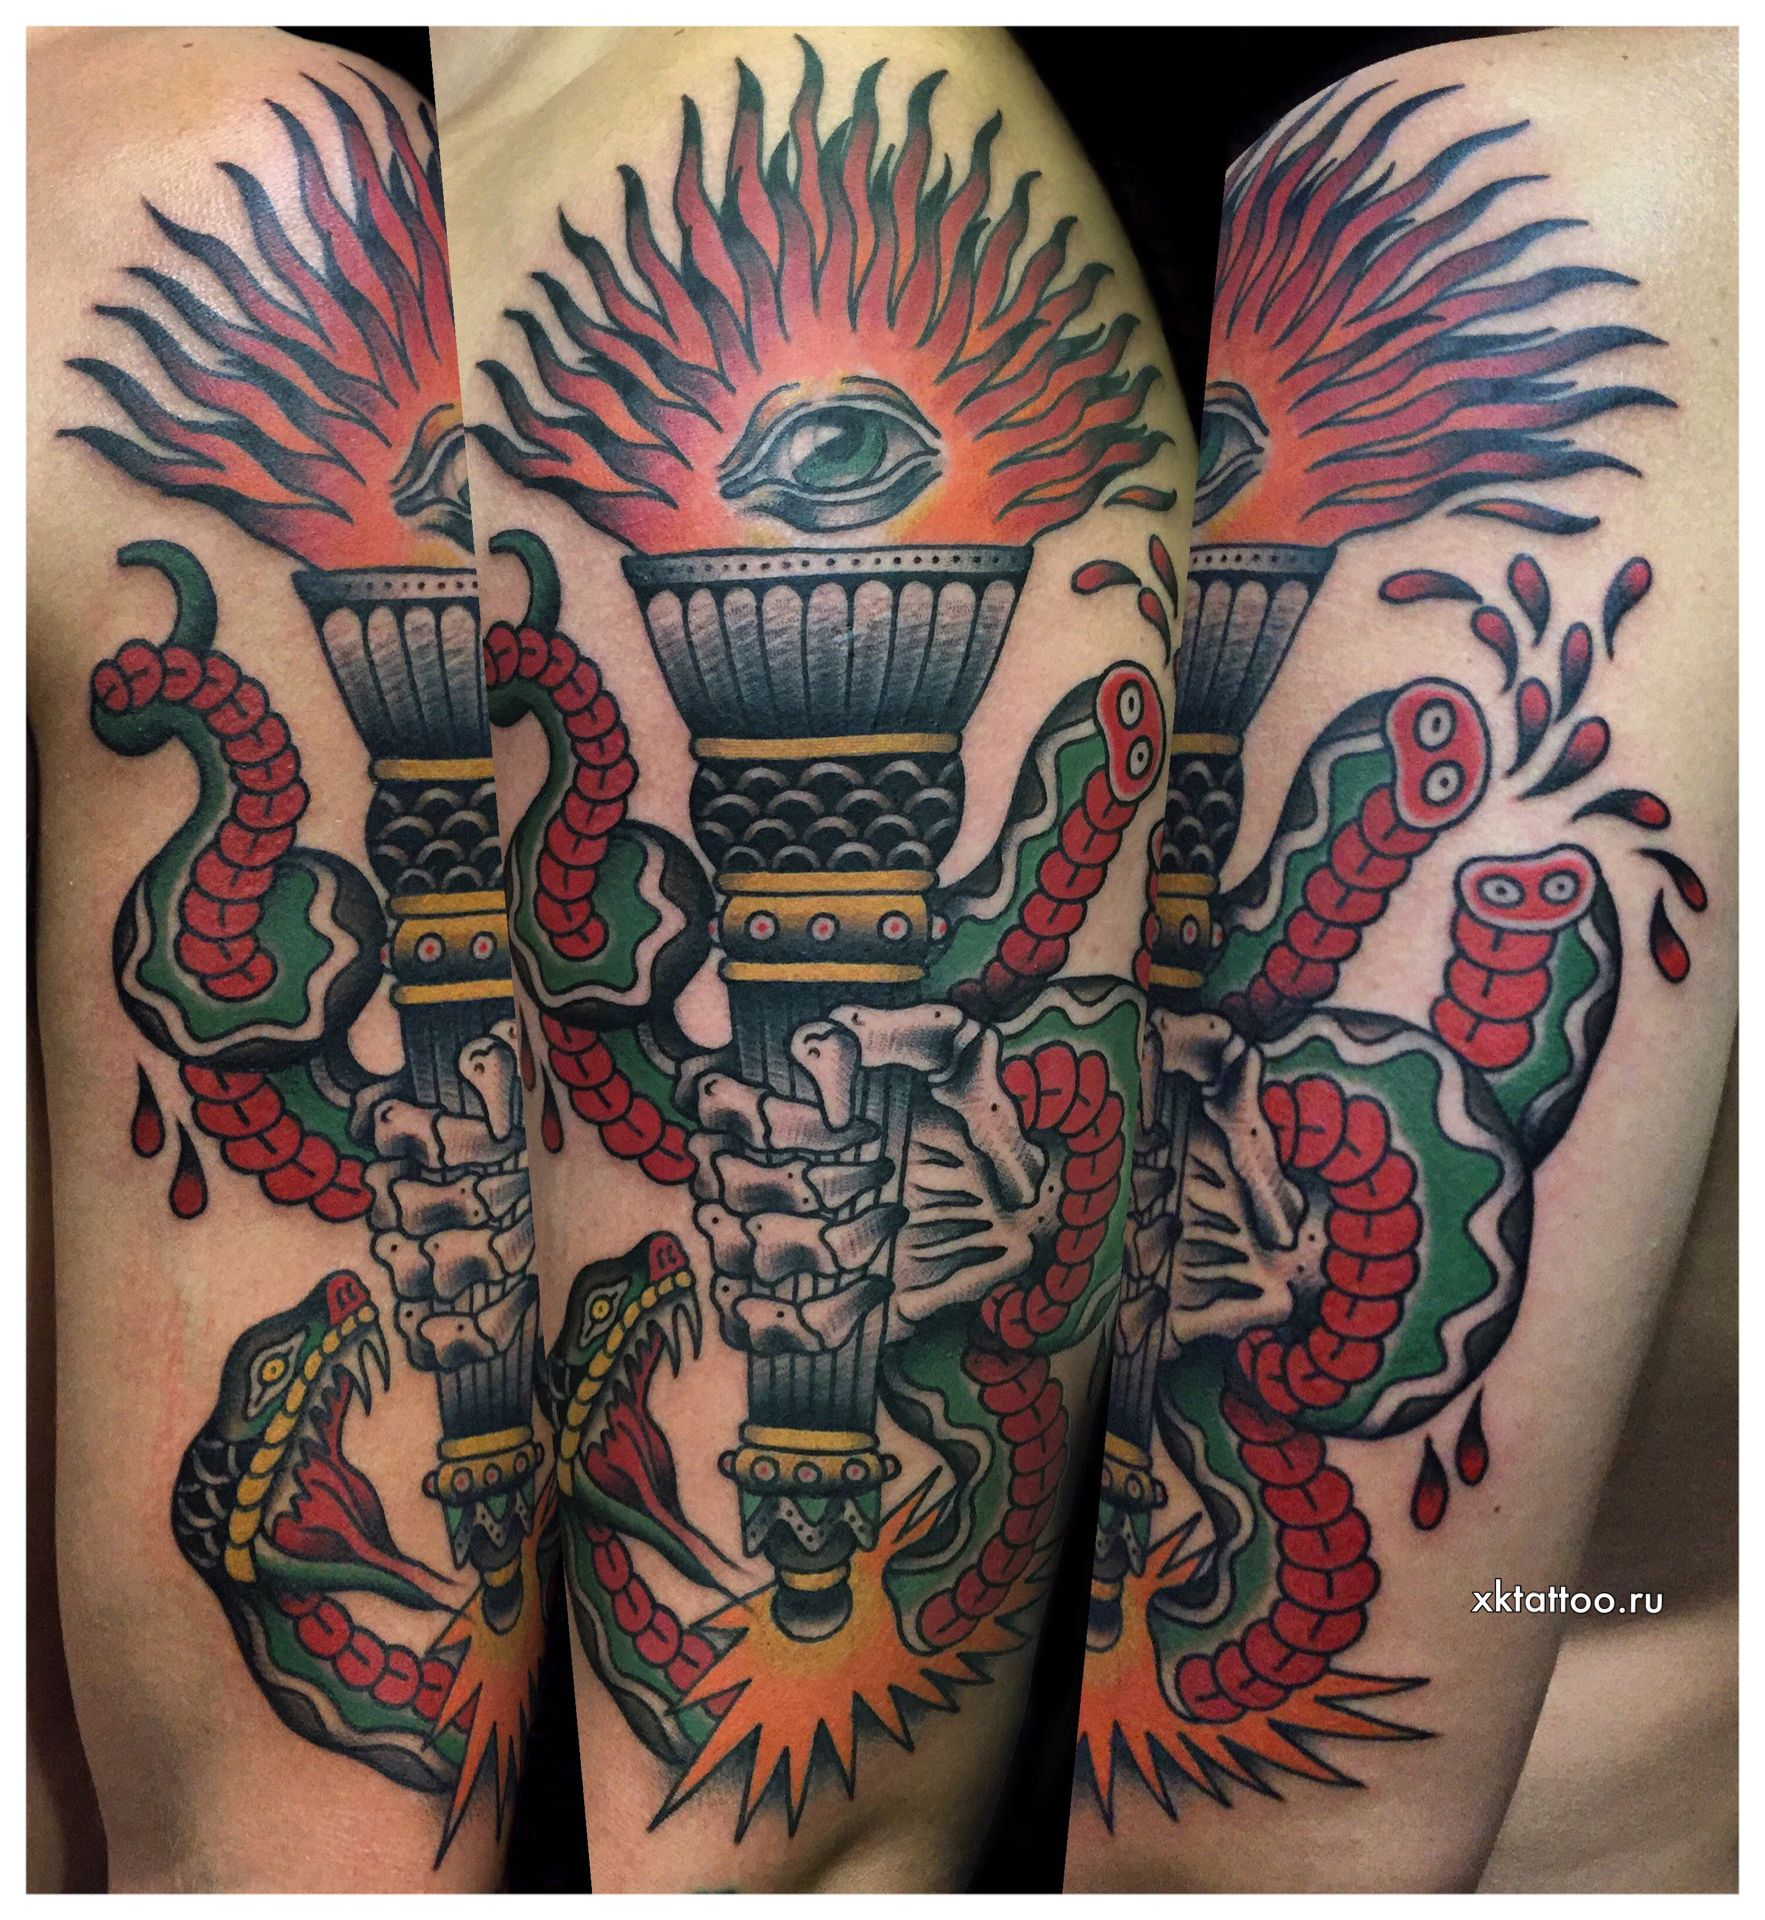 Color Tattoo By Dmitry Rechnoy Re4noy XKtattoo Studio